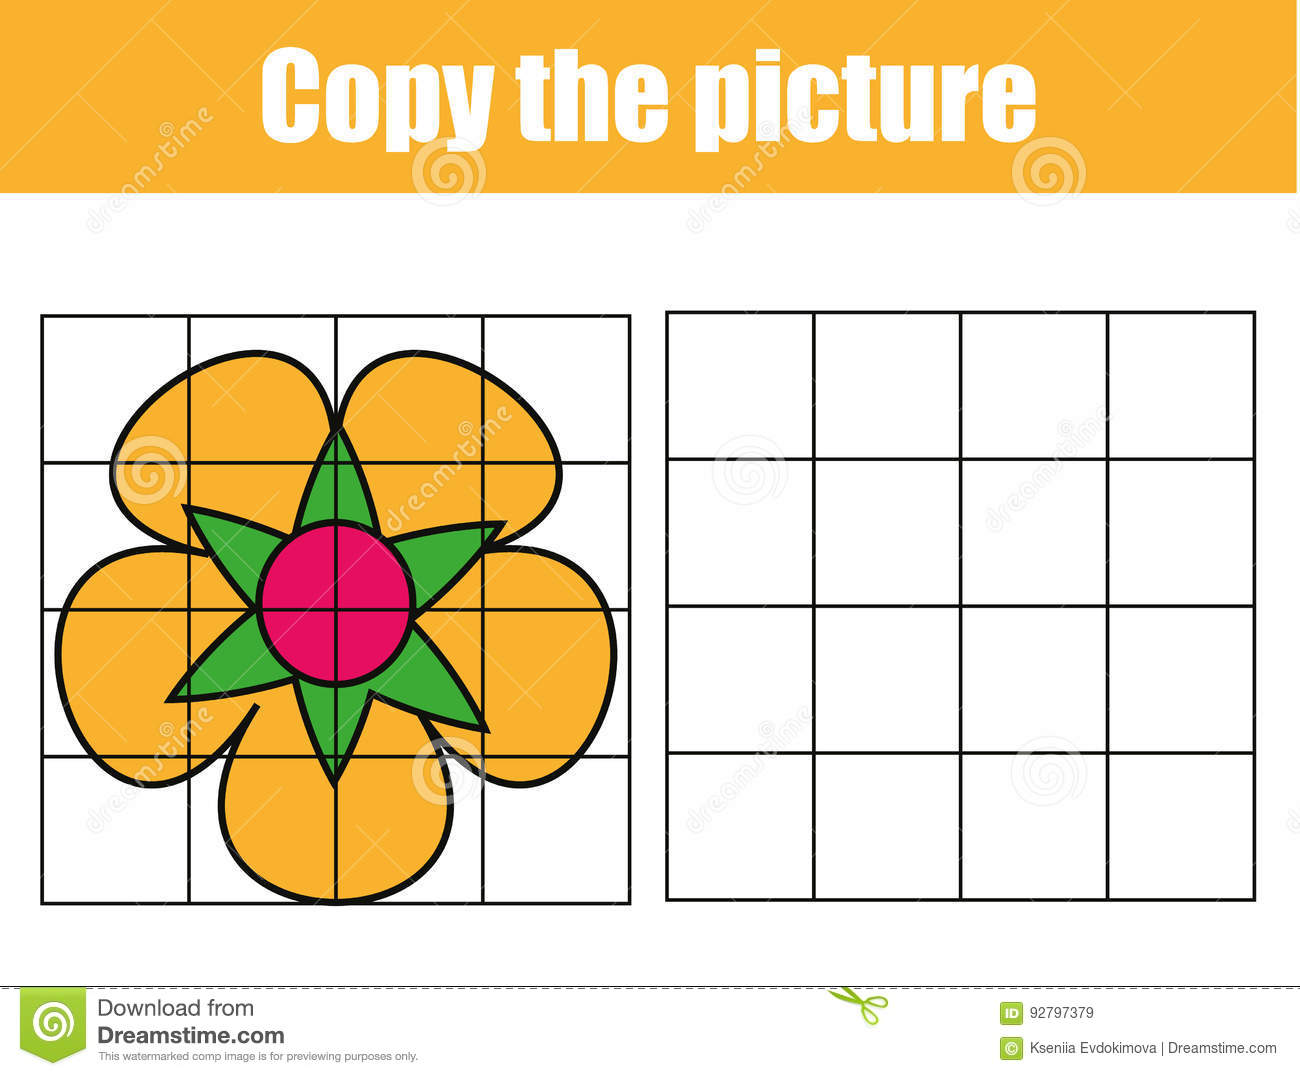 hight resolution of grid copy game complete the picture educational children game printable kids activity sheet with flower copy the picture